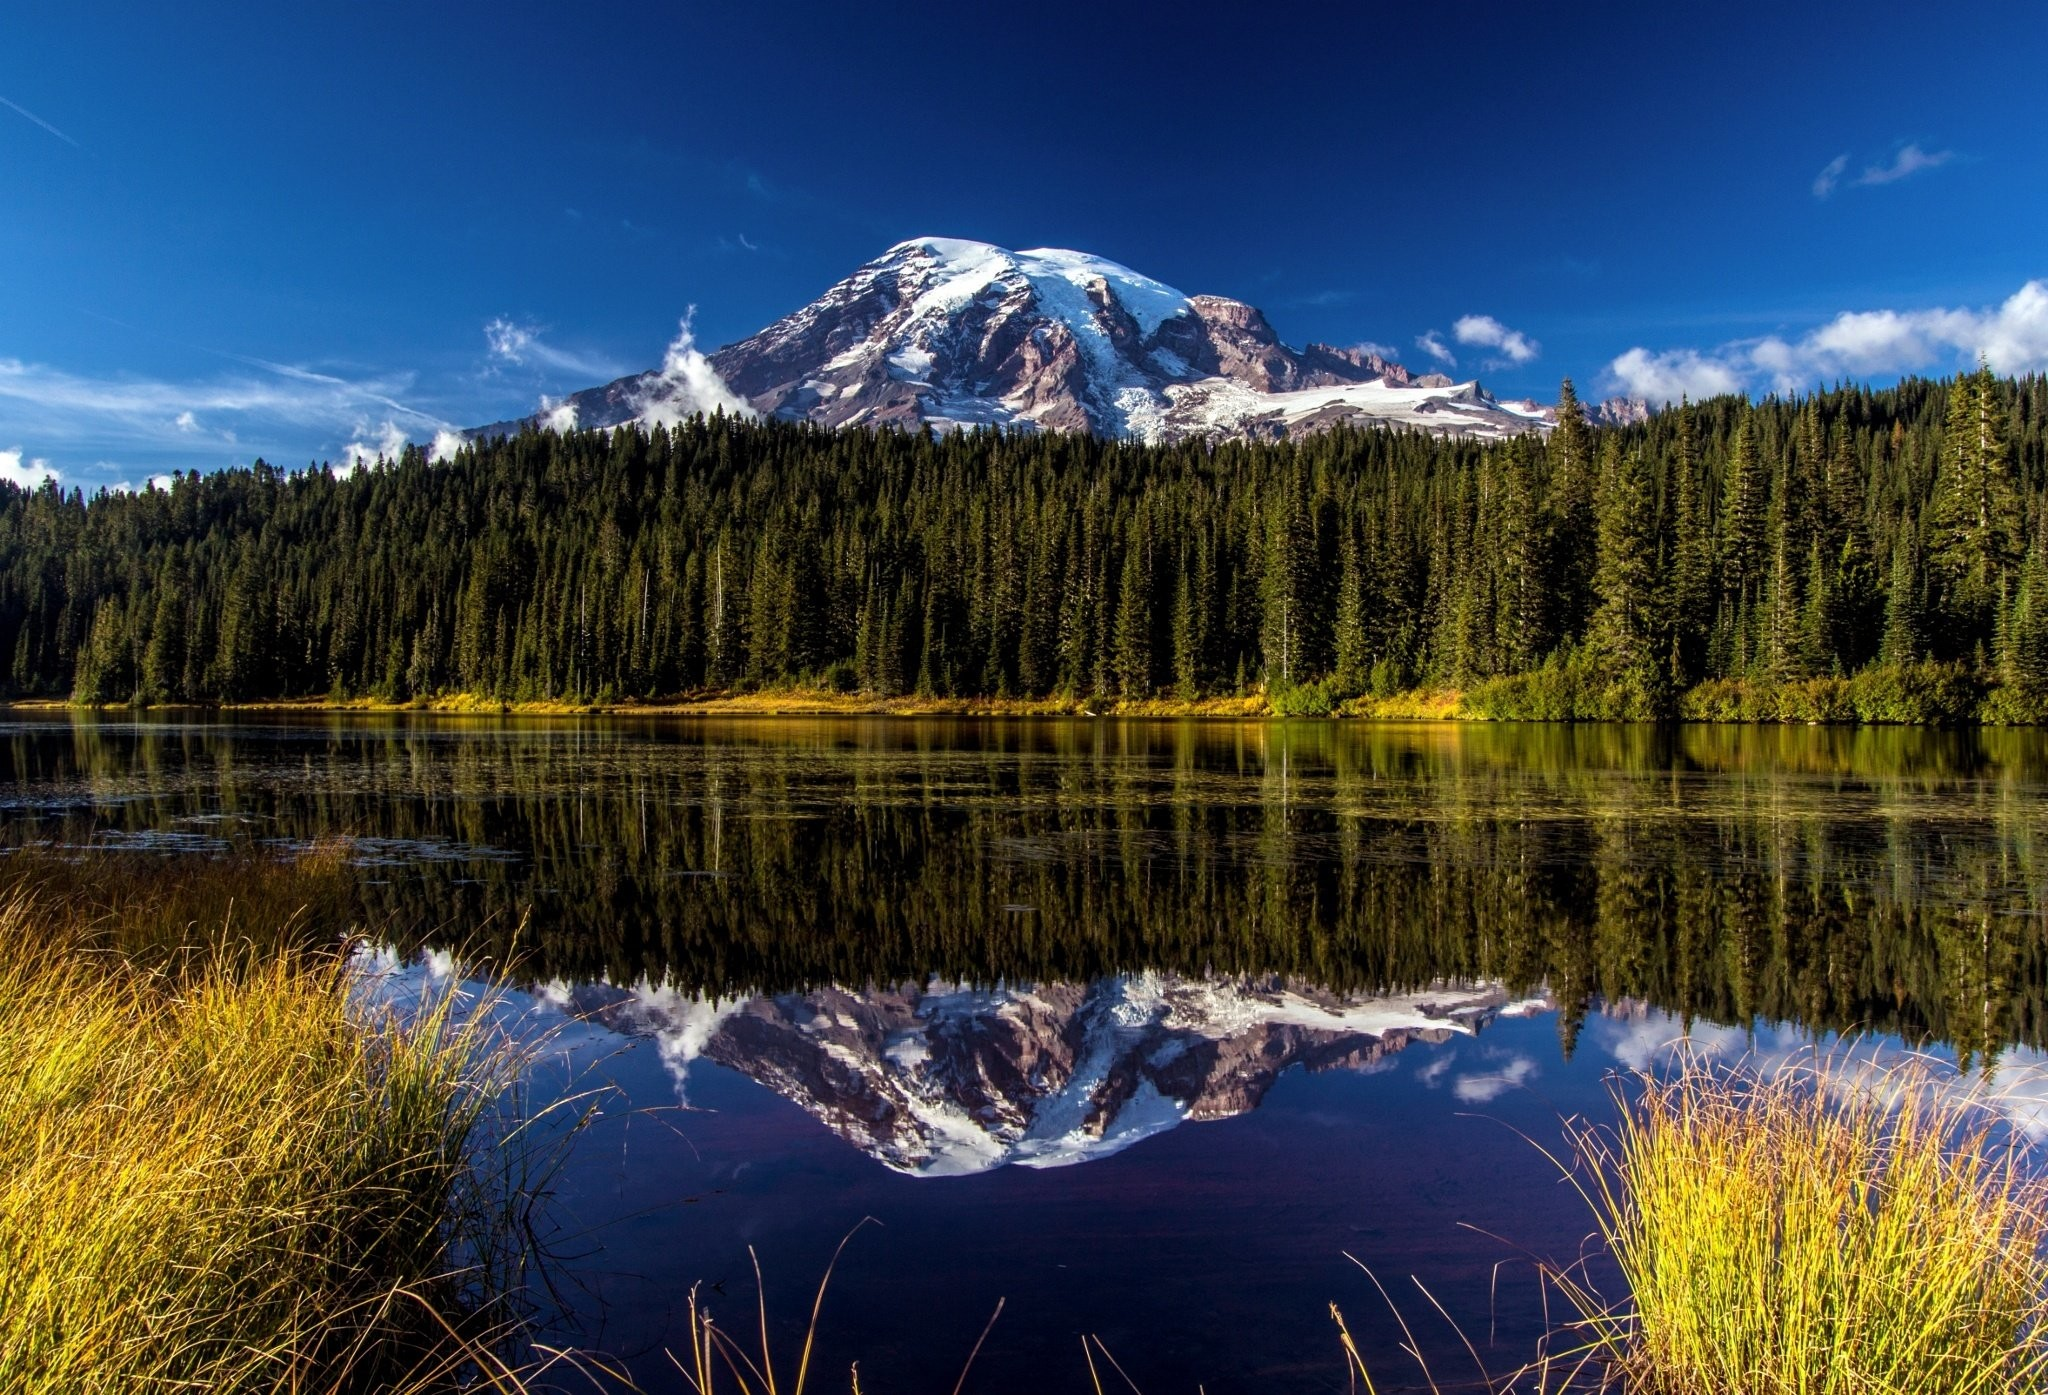 2048x1395 Forest landscape mountain Mount Rainier National Park volcano reflection  lake wallpaper |  | 485661 | WallpaperUP